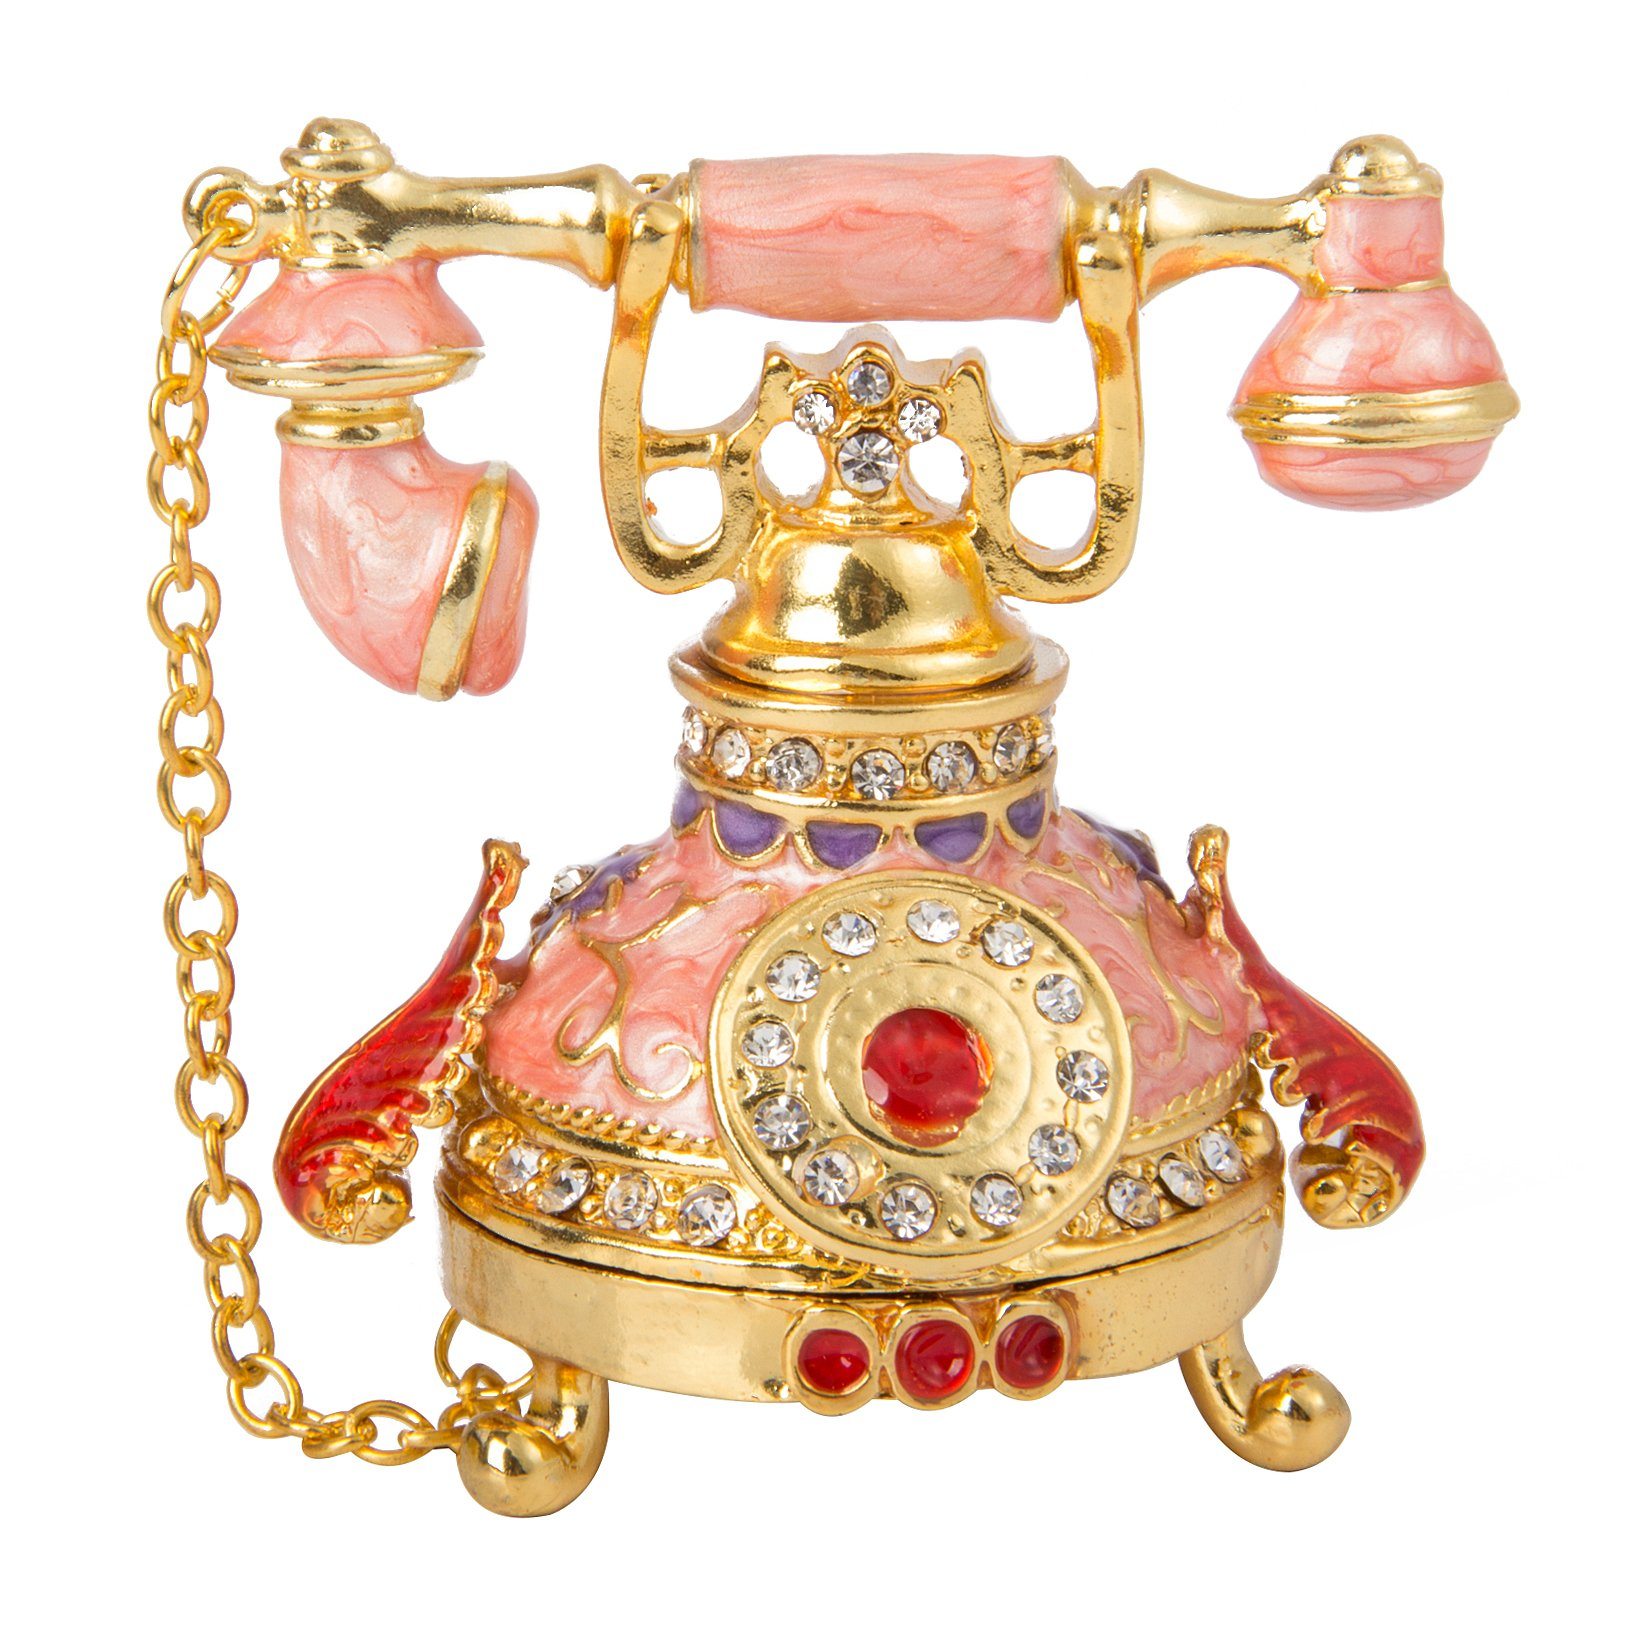 QIFU Vintage Style Telephone Shape Jewelry Trinket Box with Rich Enamel and Sparkling Rhinestones | Unique Gift for Home Decor | Best Ornament for Your Collection